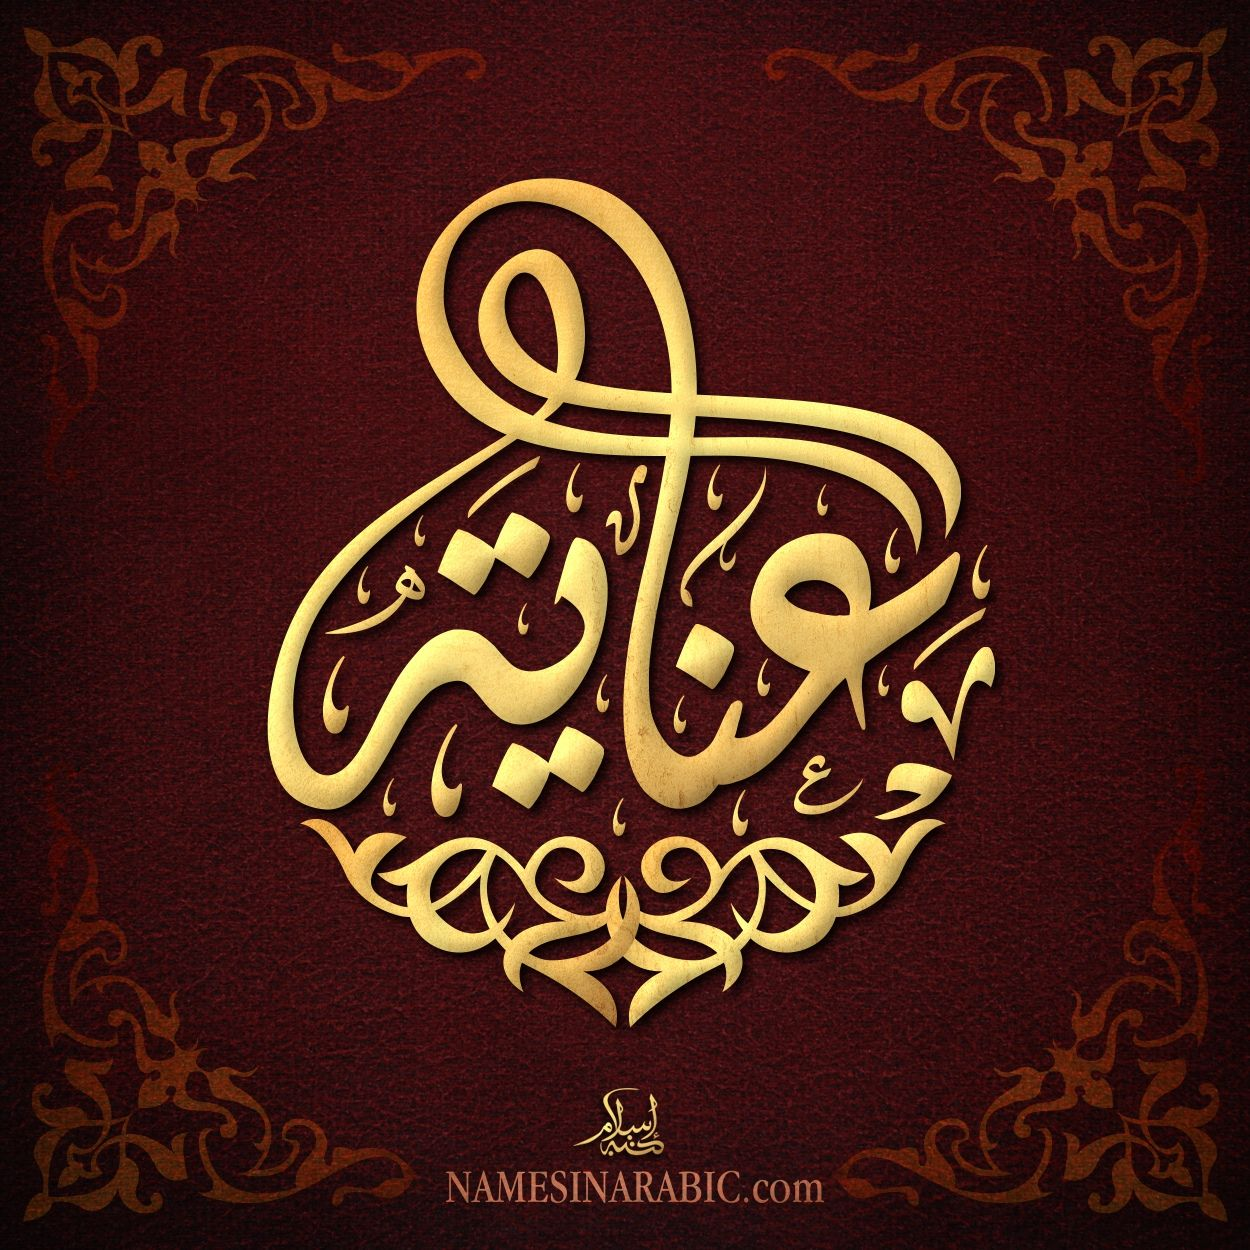 Pin By Iaybi On Name In Arabic Calligraphy Calligraphy Arabic Calligraphy Lettering